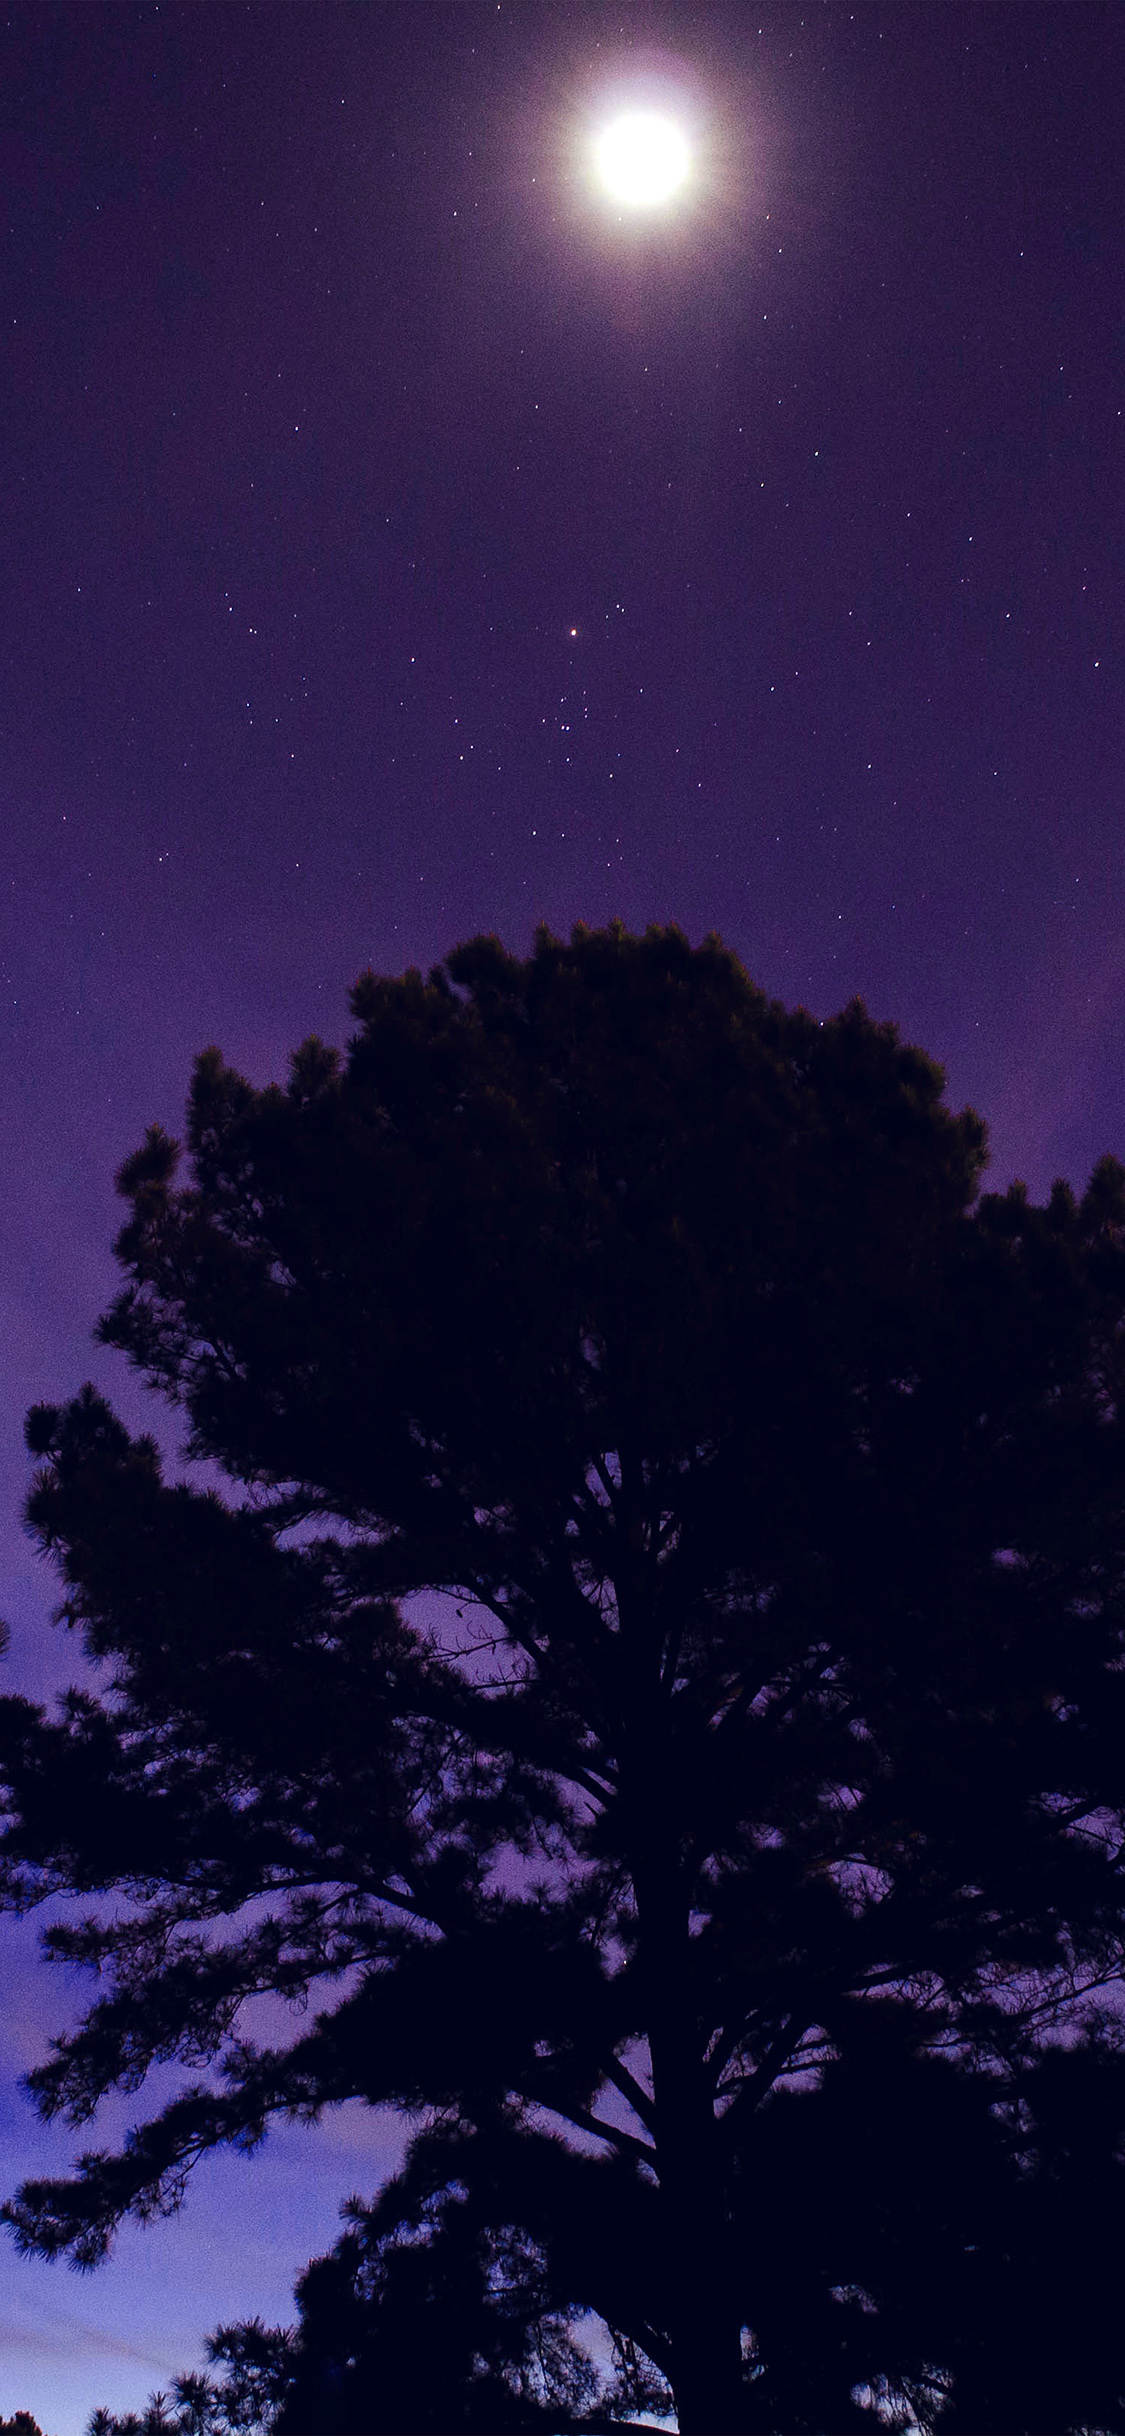 iPhonexpapers.com-Apple-iPhone-wallpaper-nj68-one-star-shine-night-dark-blue-sky-wood-purple